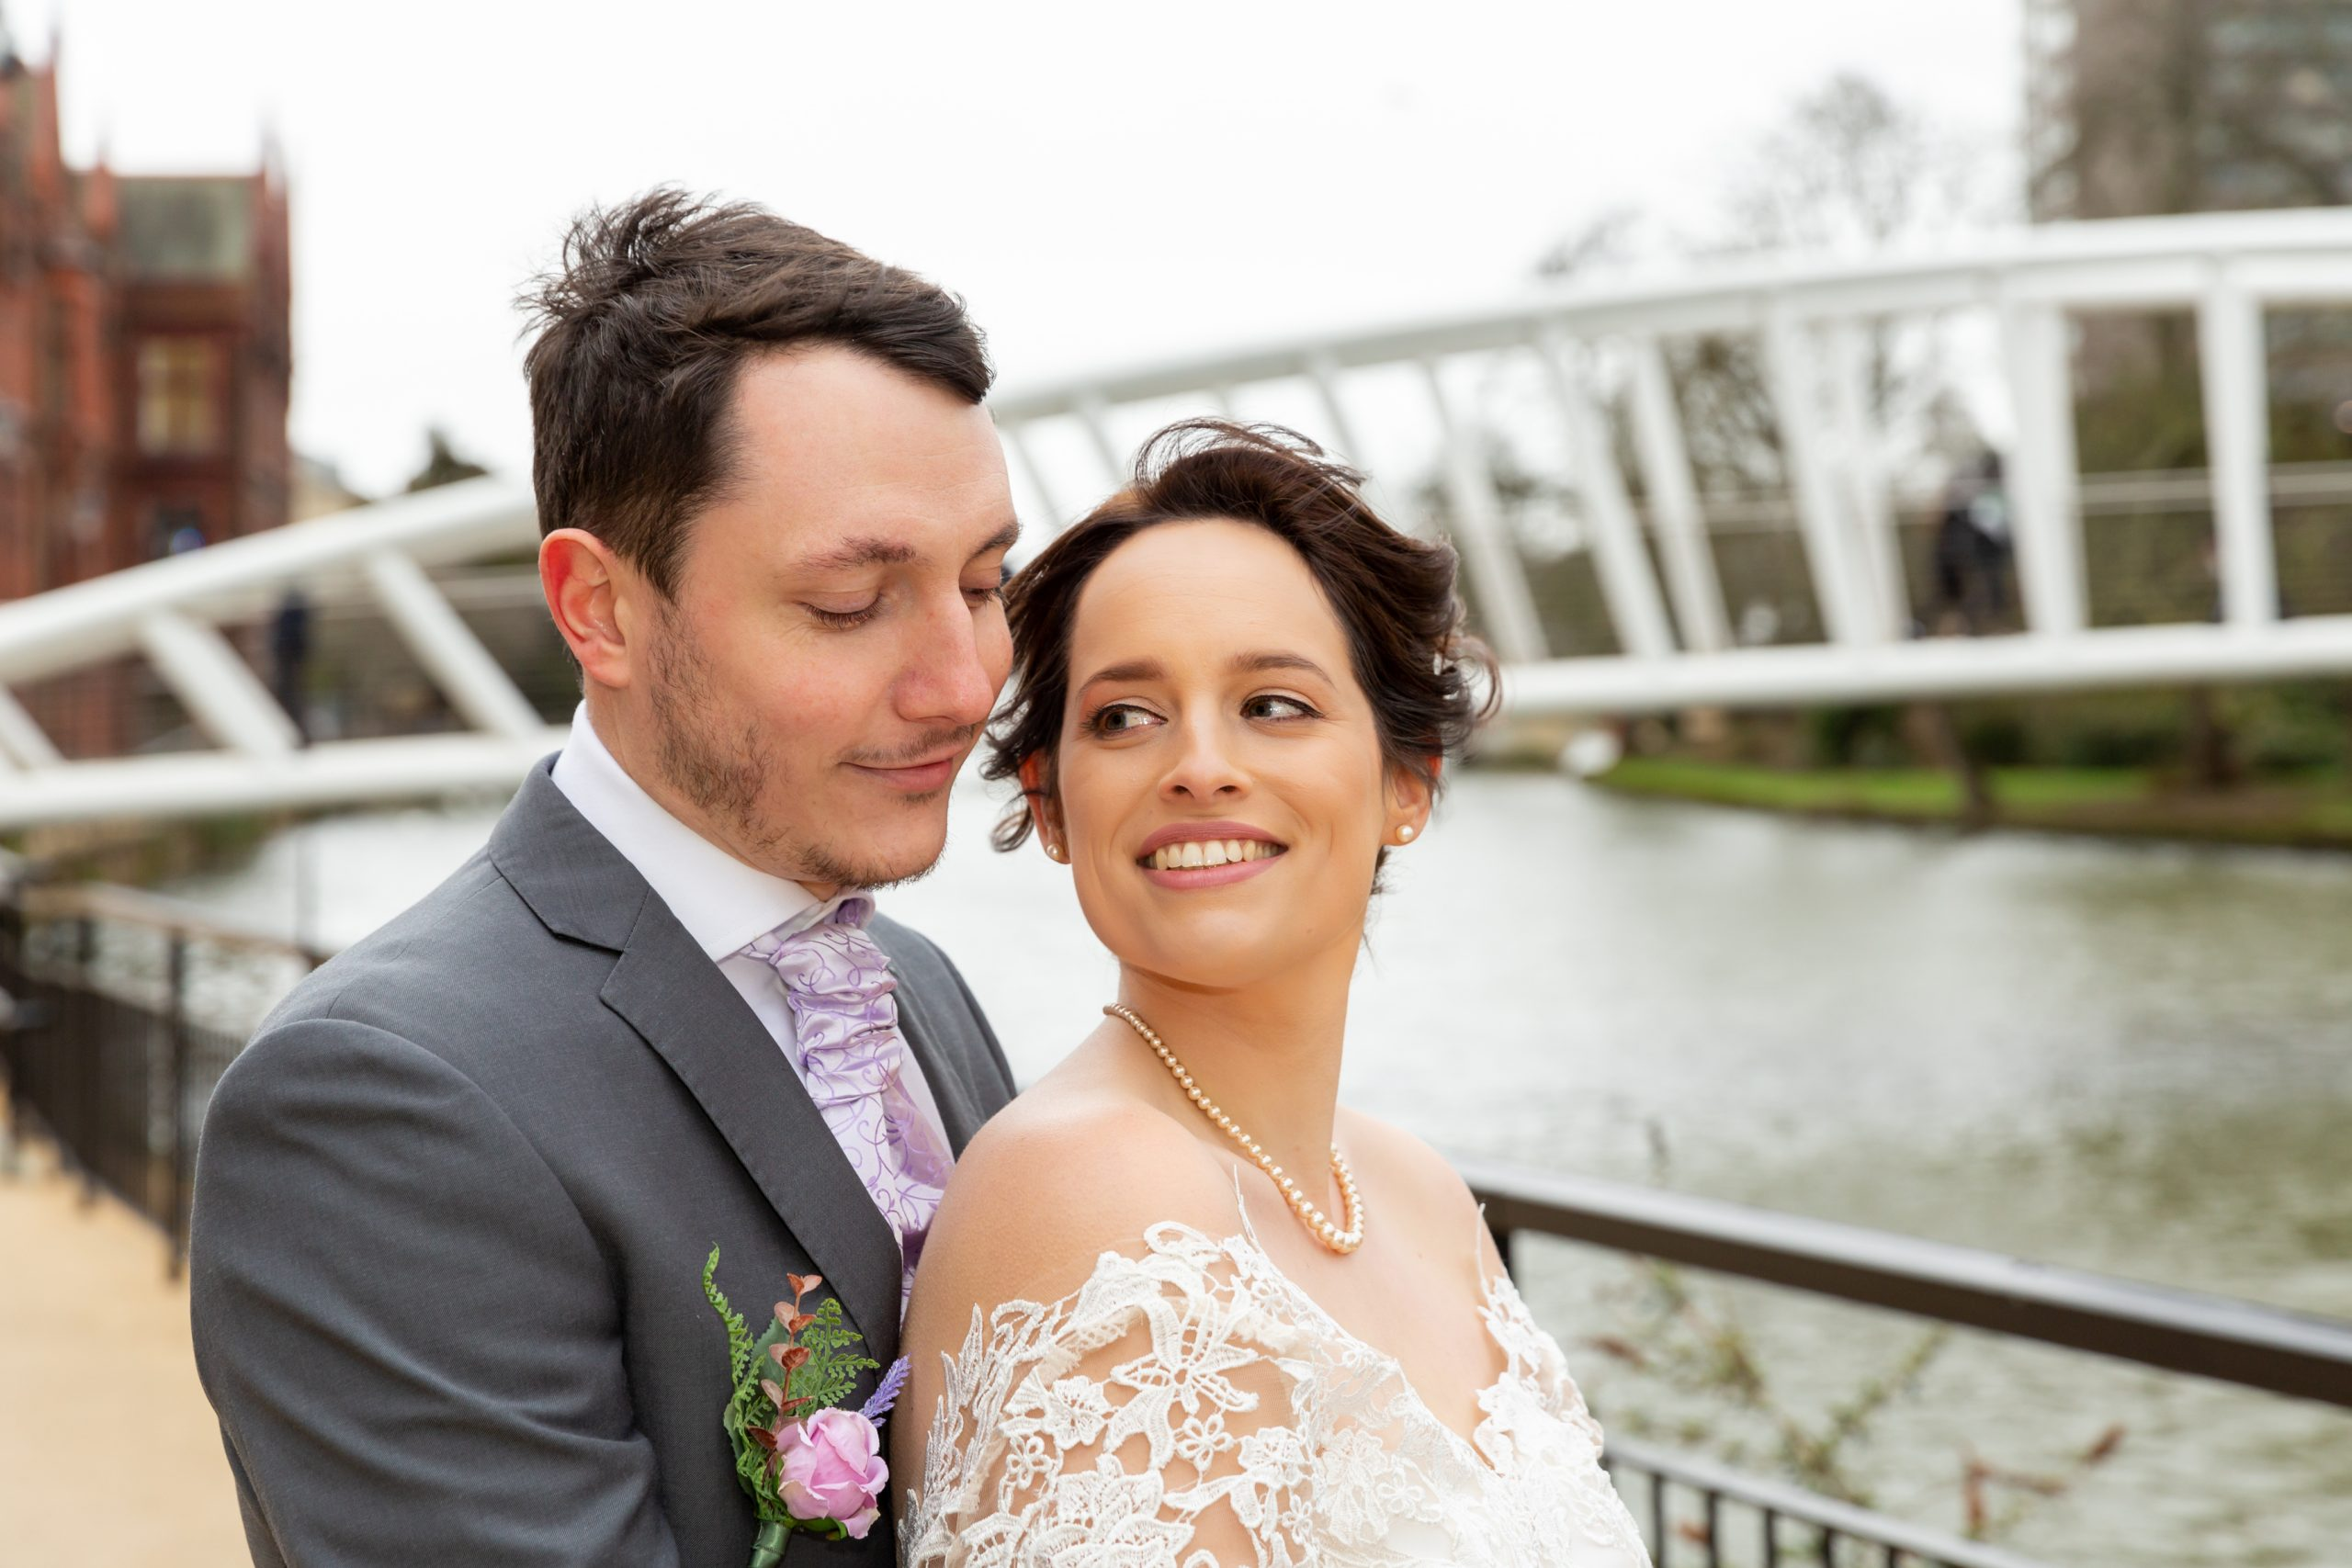 Bex & Ollie tie the knot!